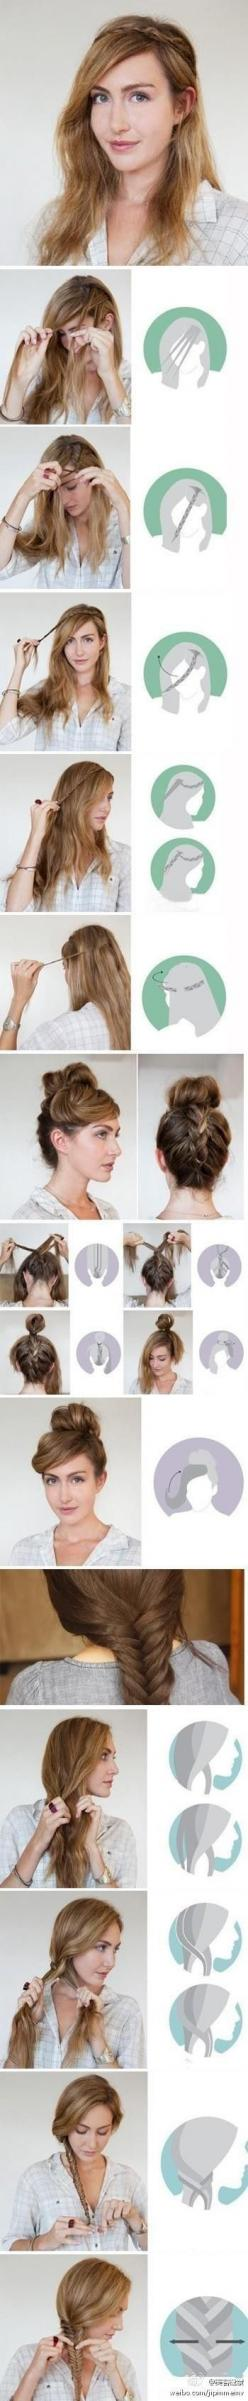 (love the 2nd updo!) Fashion Worship | Fashion website with pictures of fashion design, women fashion, women apparel | Page 2: Hair Ideas, Hairstyles, Hair Tutorials, Hairdos, Hair Styles, Long Hair, Hair Do